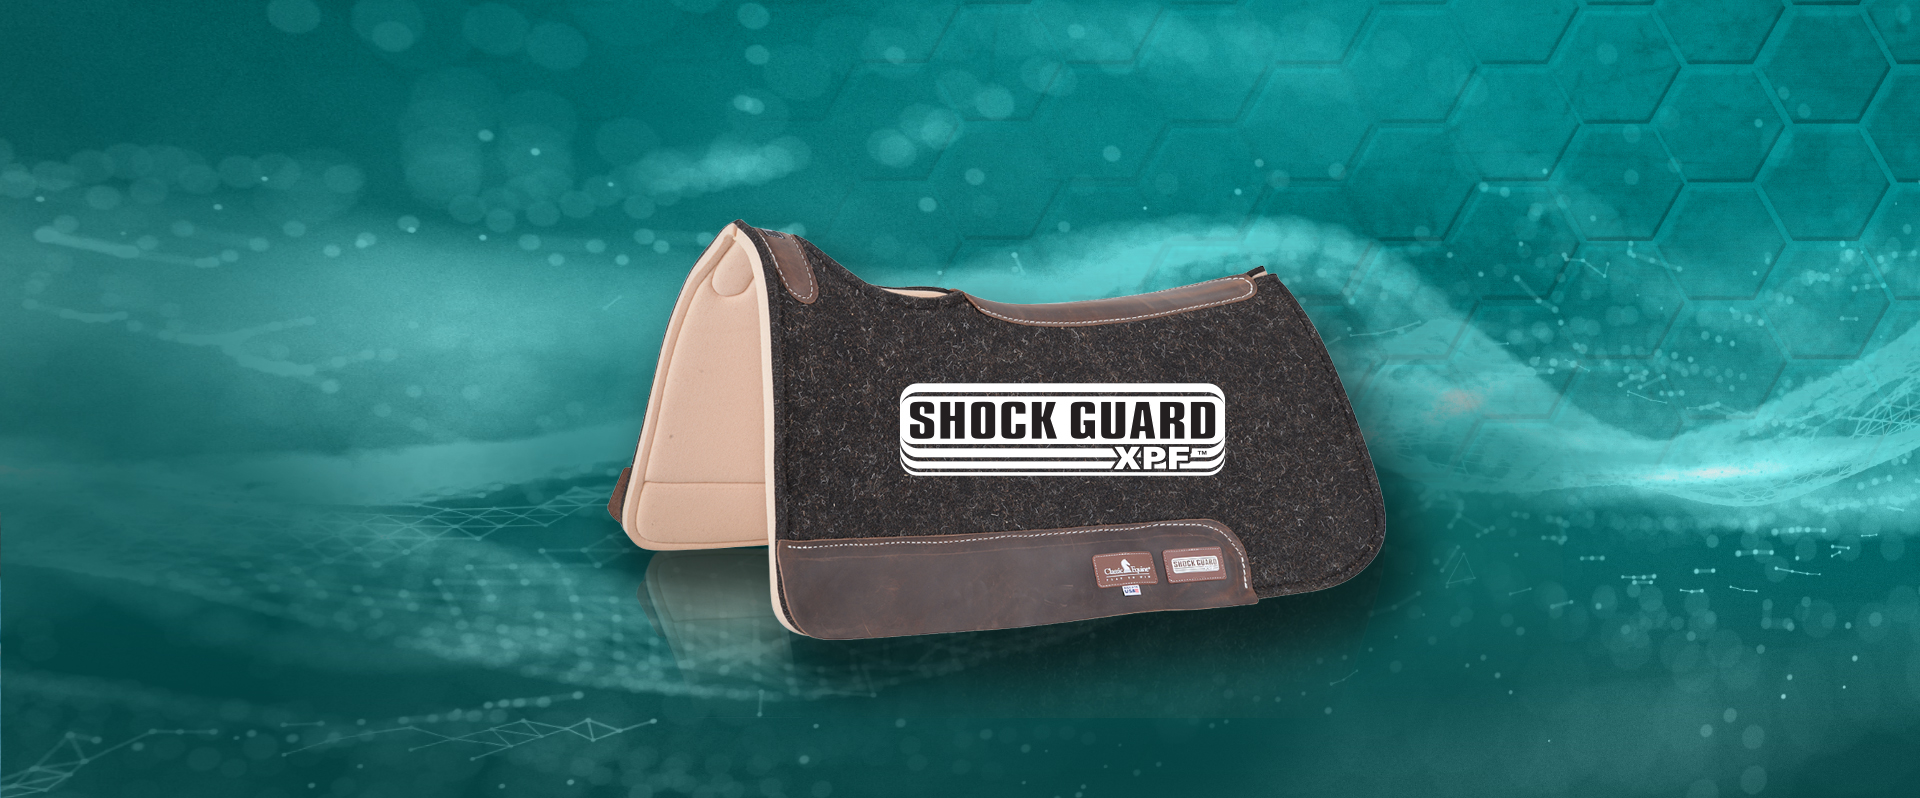 The Shock Guard provides great impact protection for horses backs using XPF breathable technology